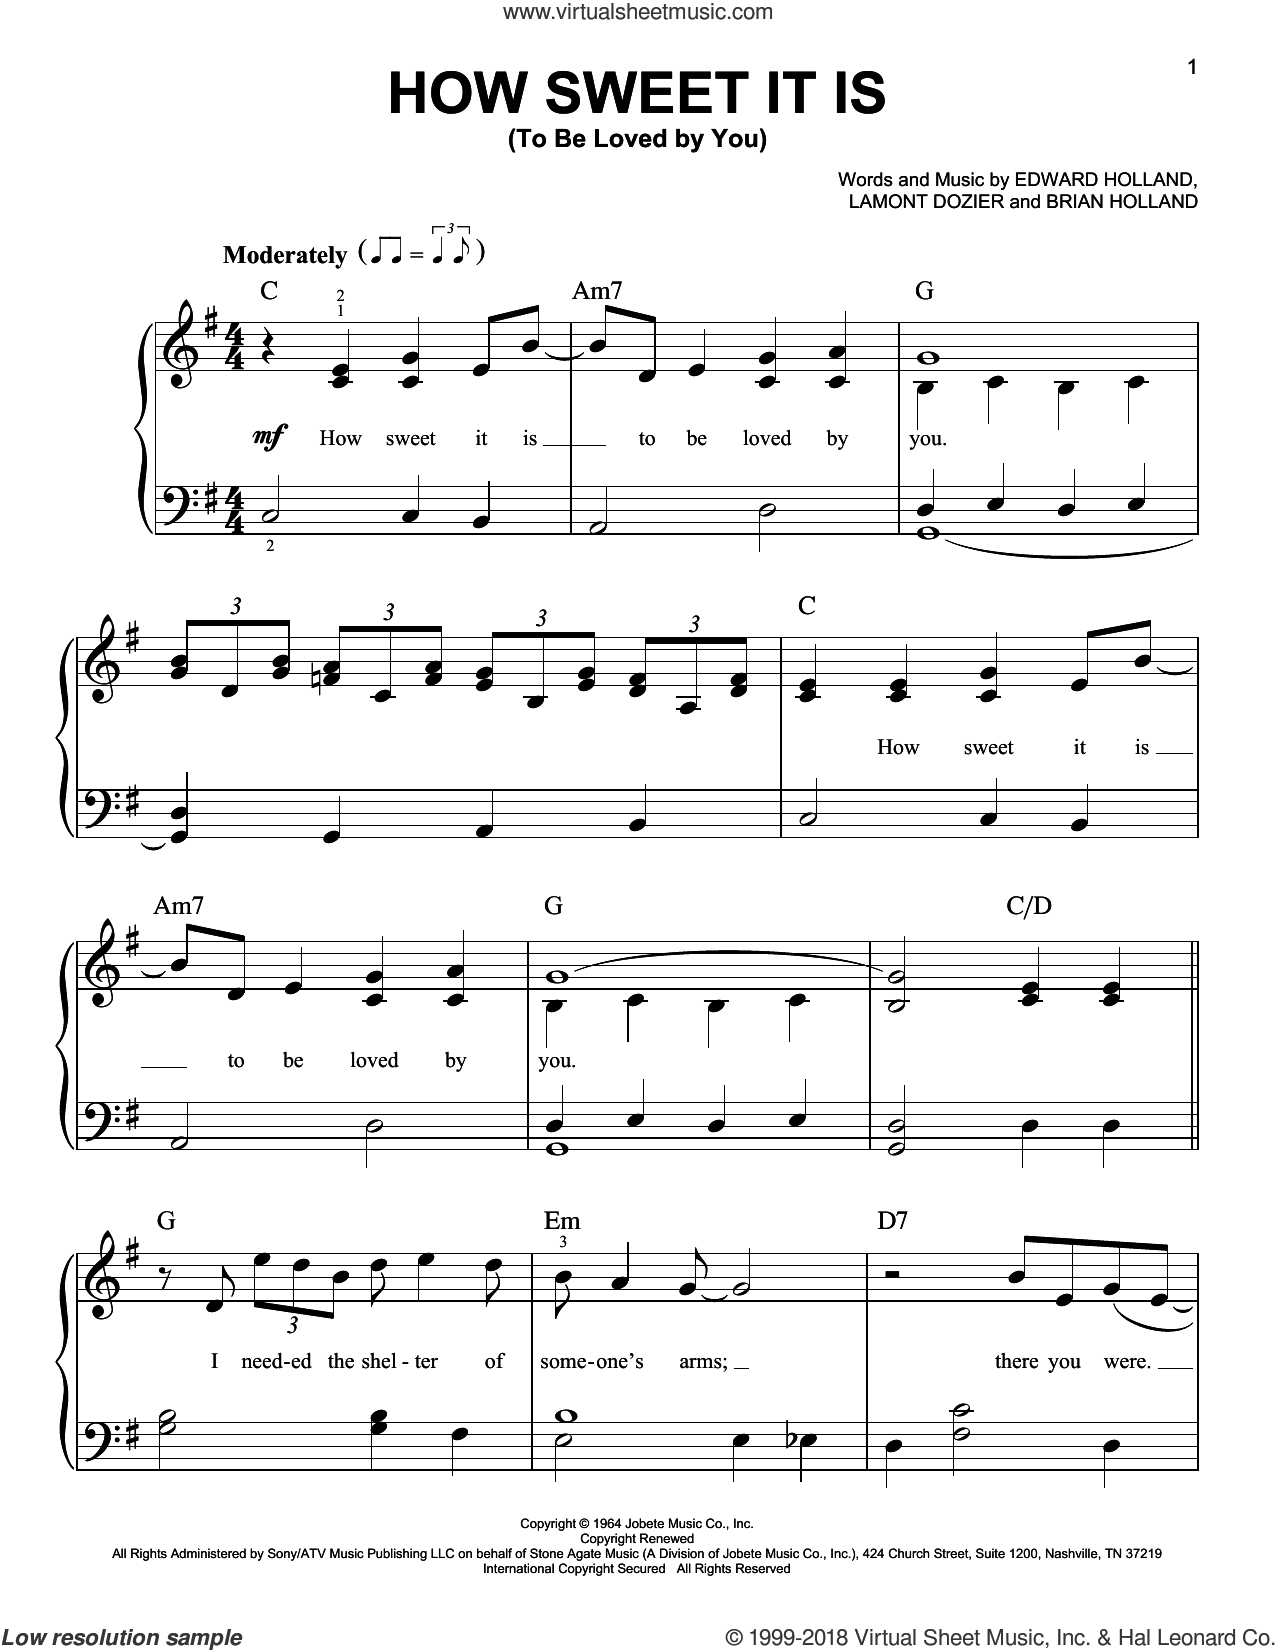 How Sweet It Is (To Be Loved By You) sheet music for piano solo by Marvin Gaye, James Taylor, Brian Holland, Eddie Holland and Lamont Dozier, beginner skill level